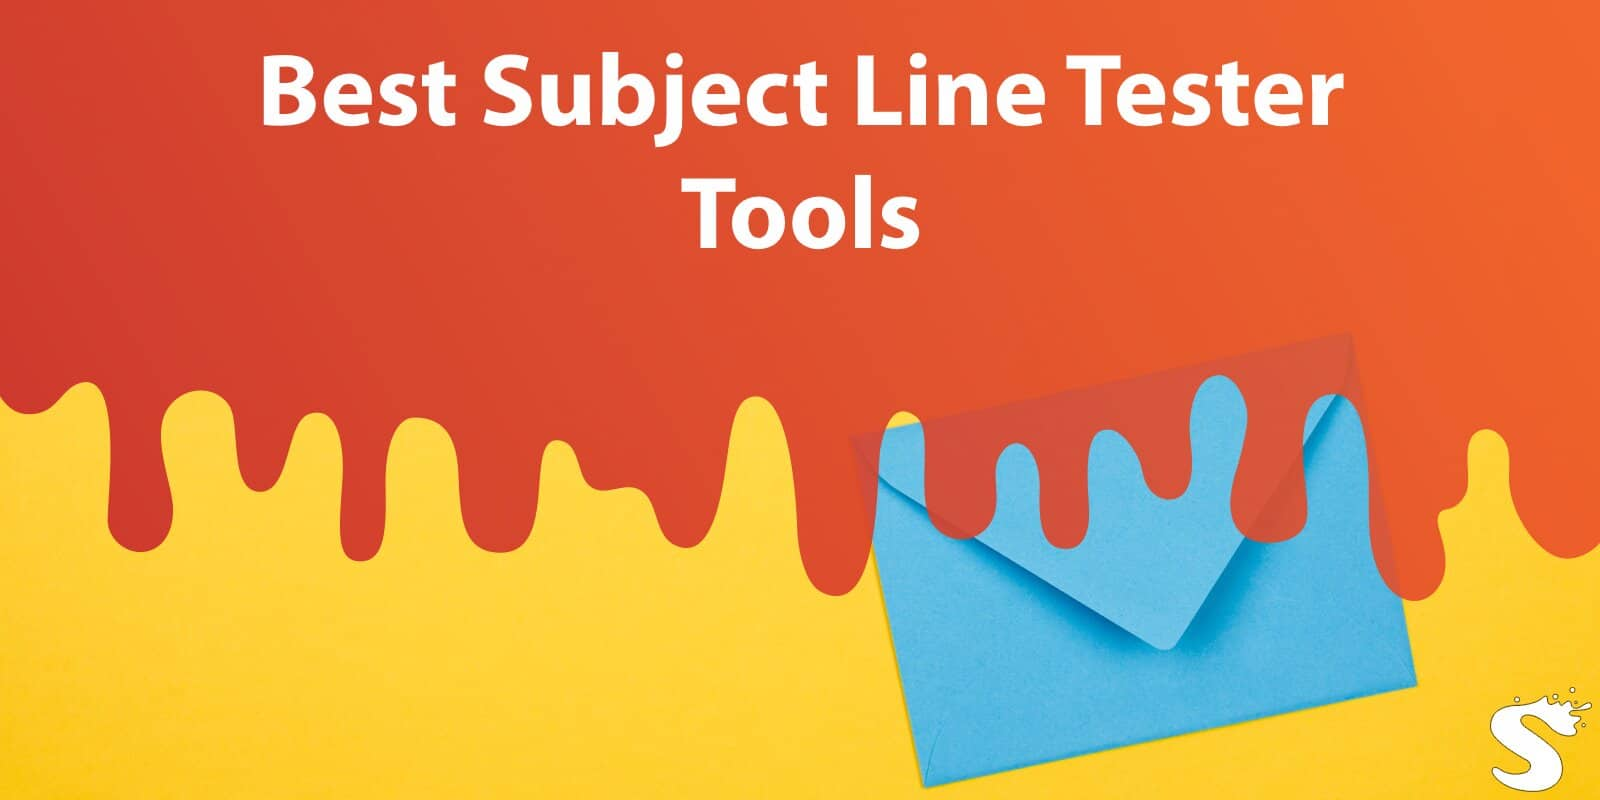 Best Subject Line Tester Tools